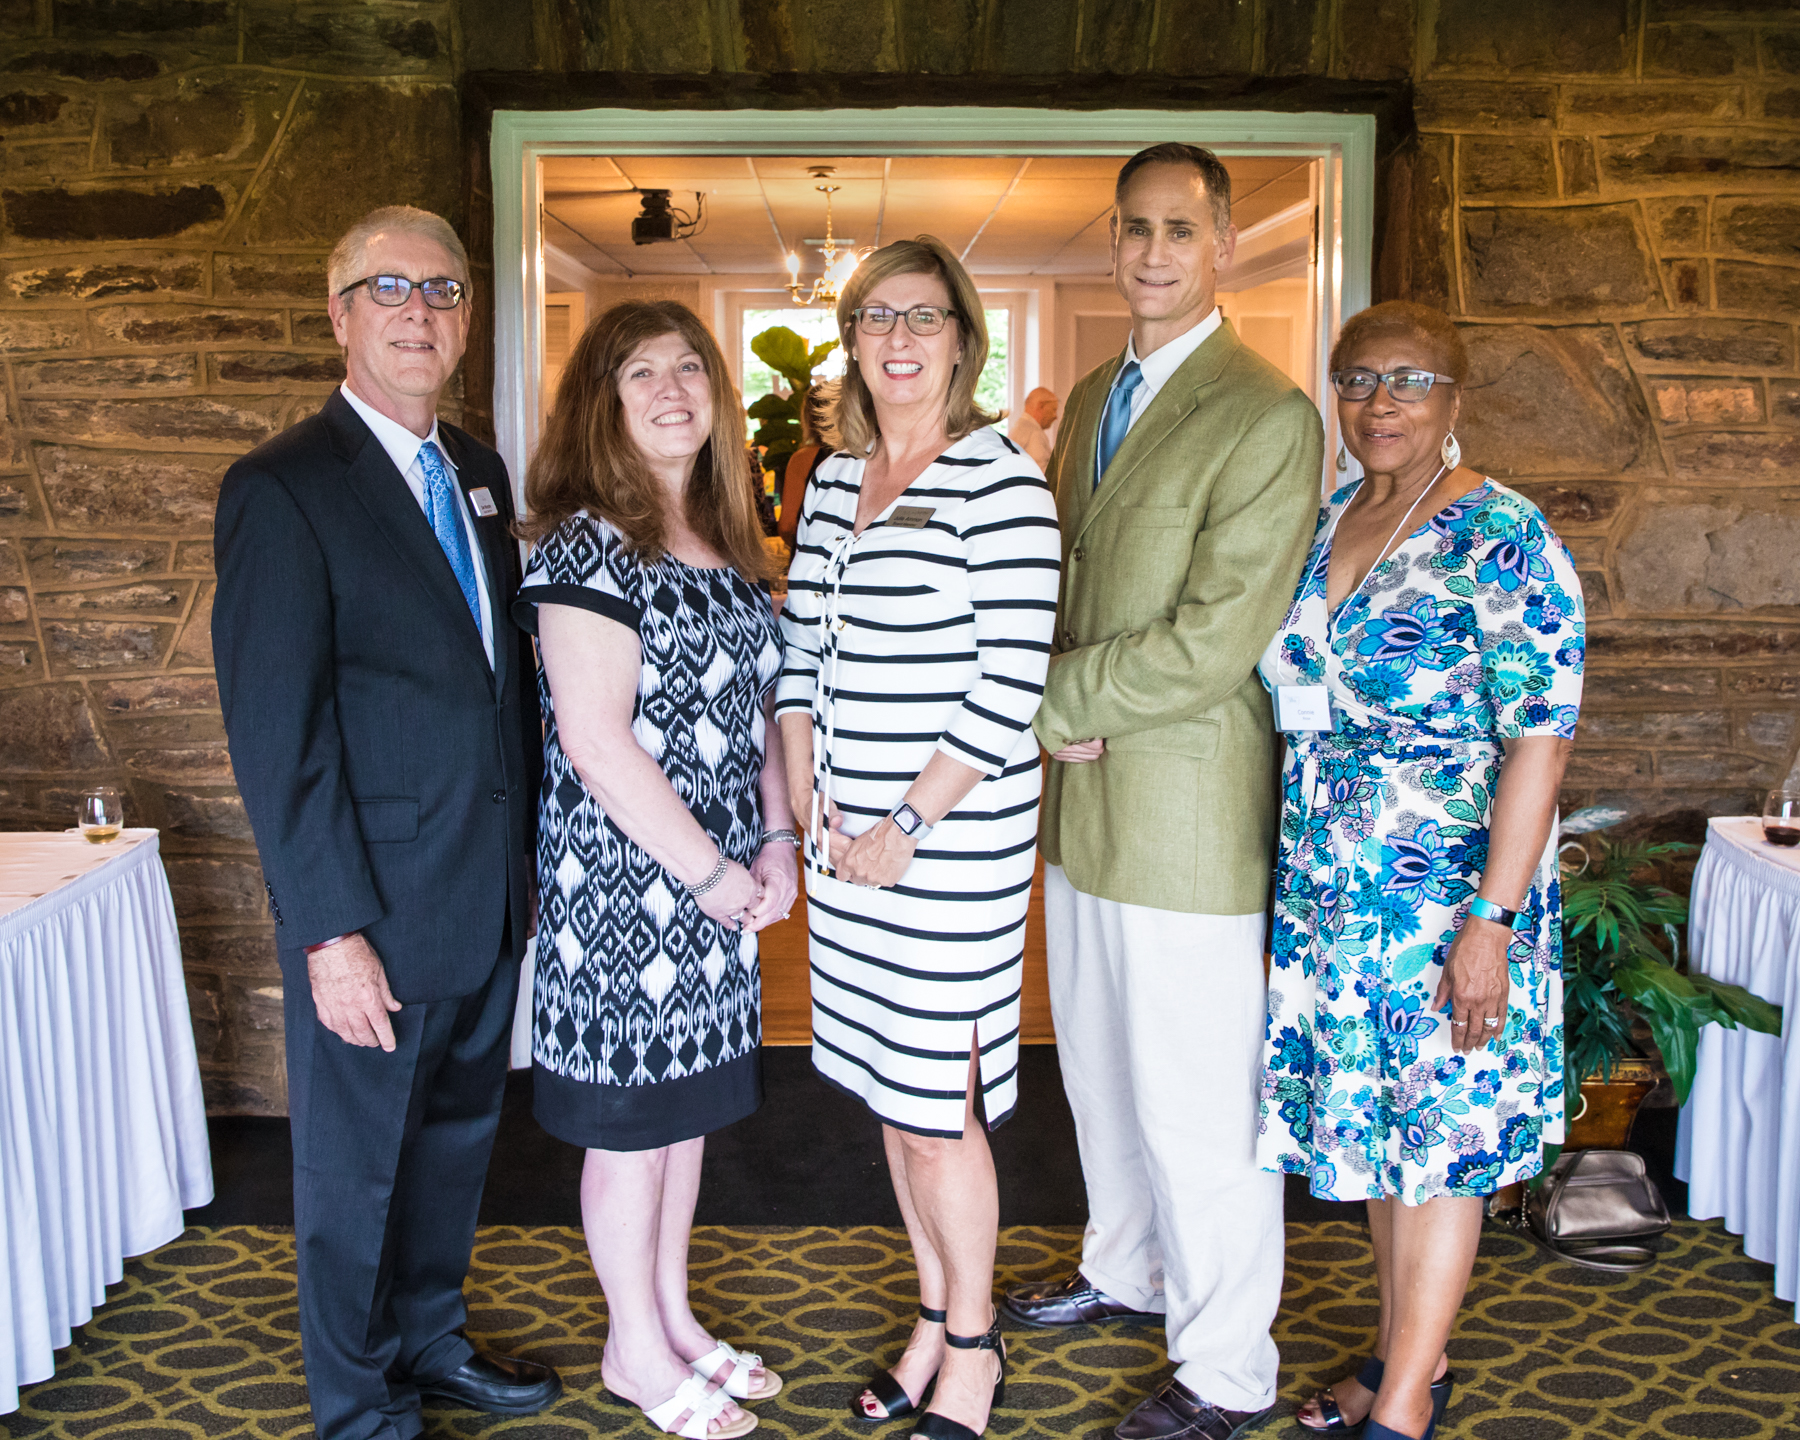 Board Members (from left): Dan Murphy, Dana Dovberg (Treasurer), Julie Ammon (President), Al Iaccoca, and Connie Rose.